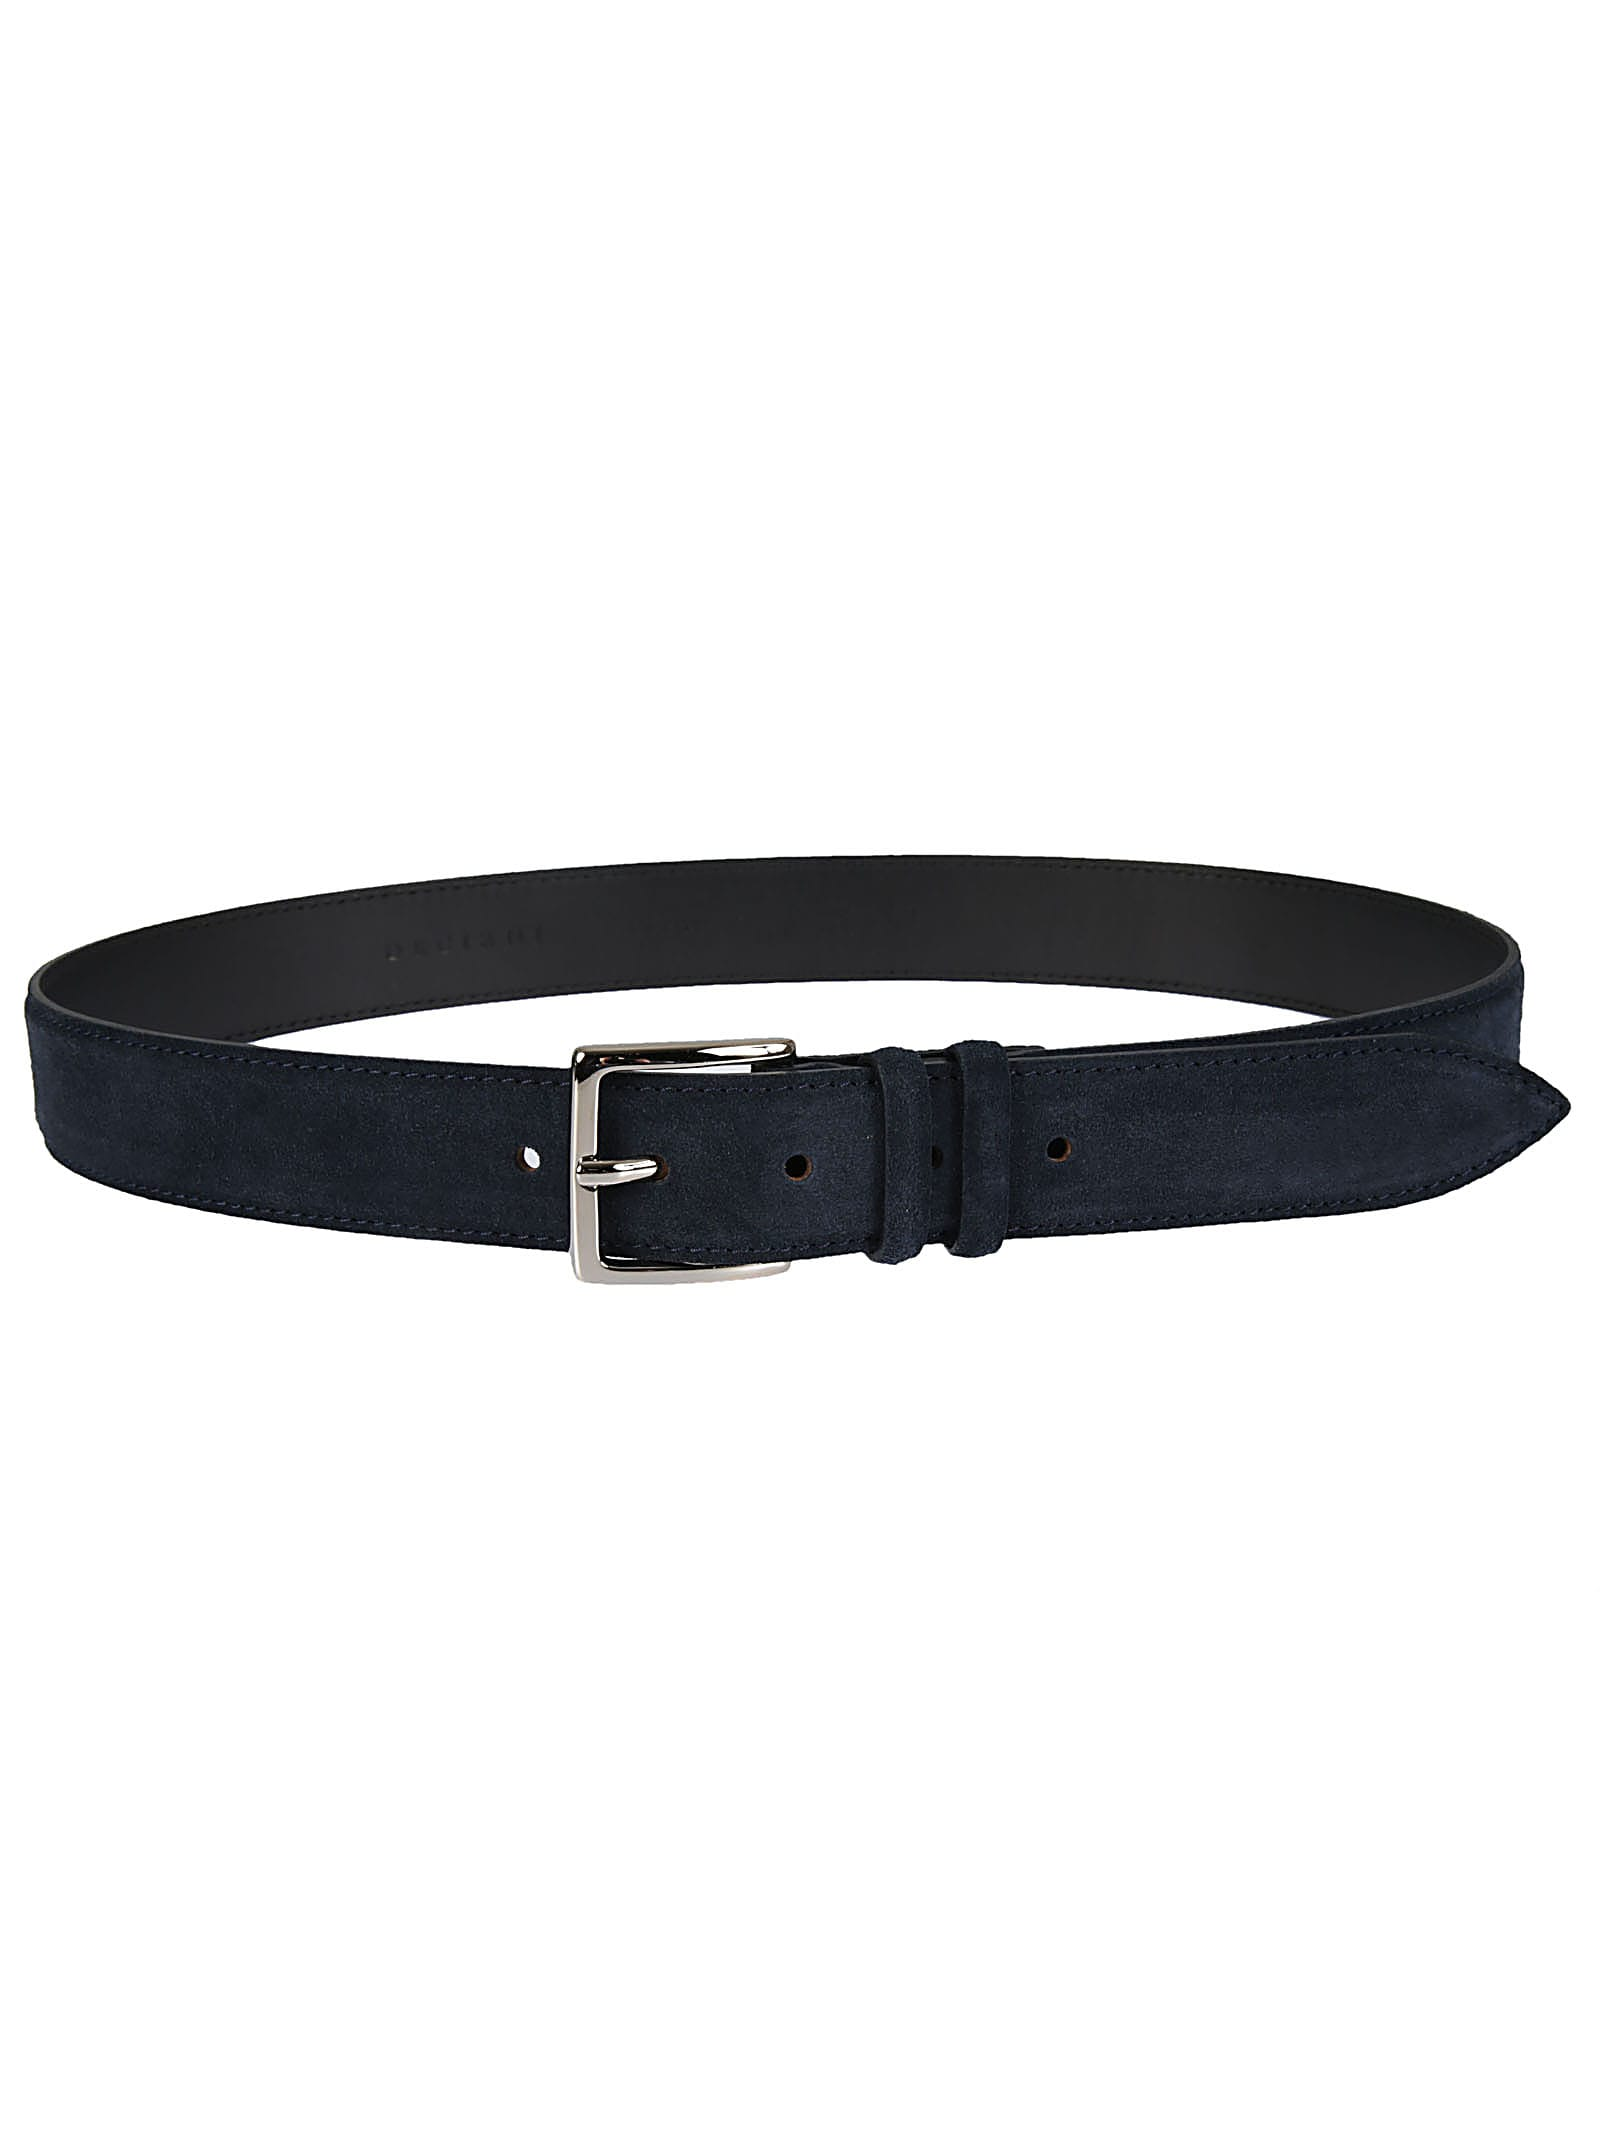 Orciani Pointed Tip Belt